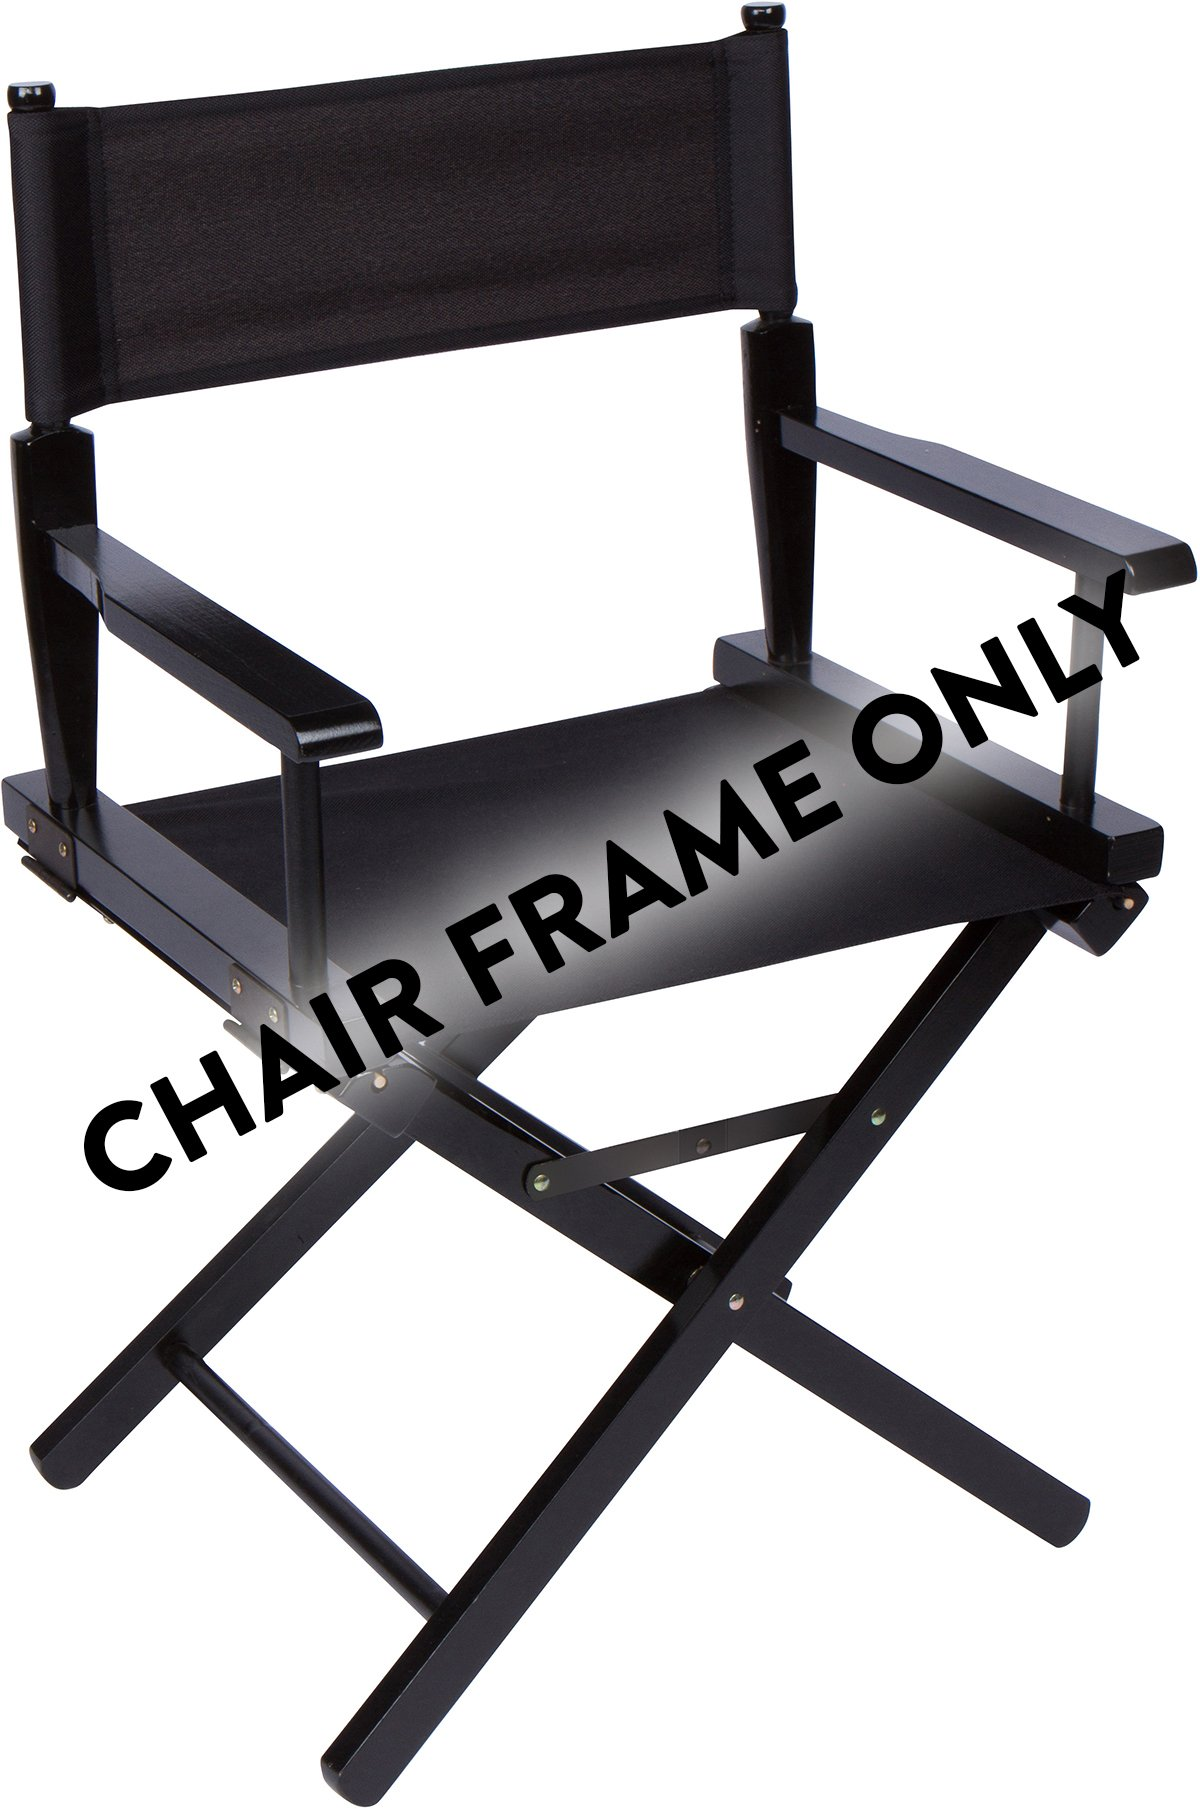 24'' Wood Frame Director Chair Body by Trademark Innovations (Black Wood) by Trademark Innovations